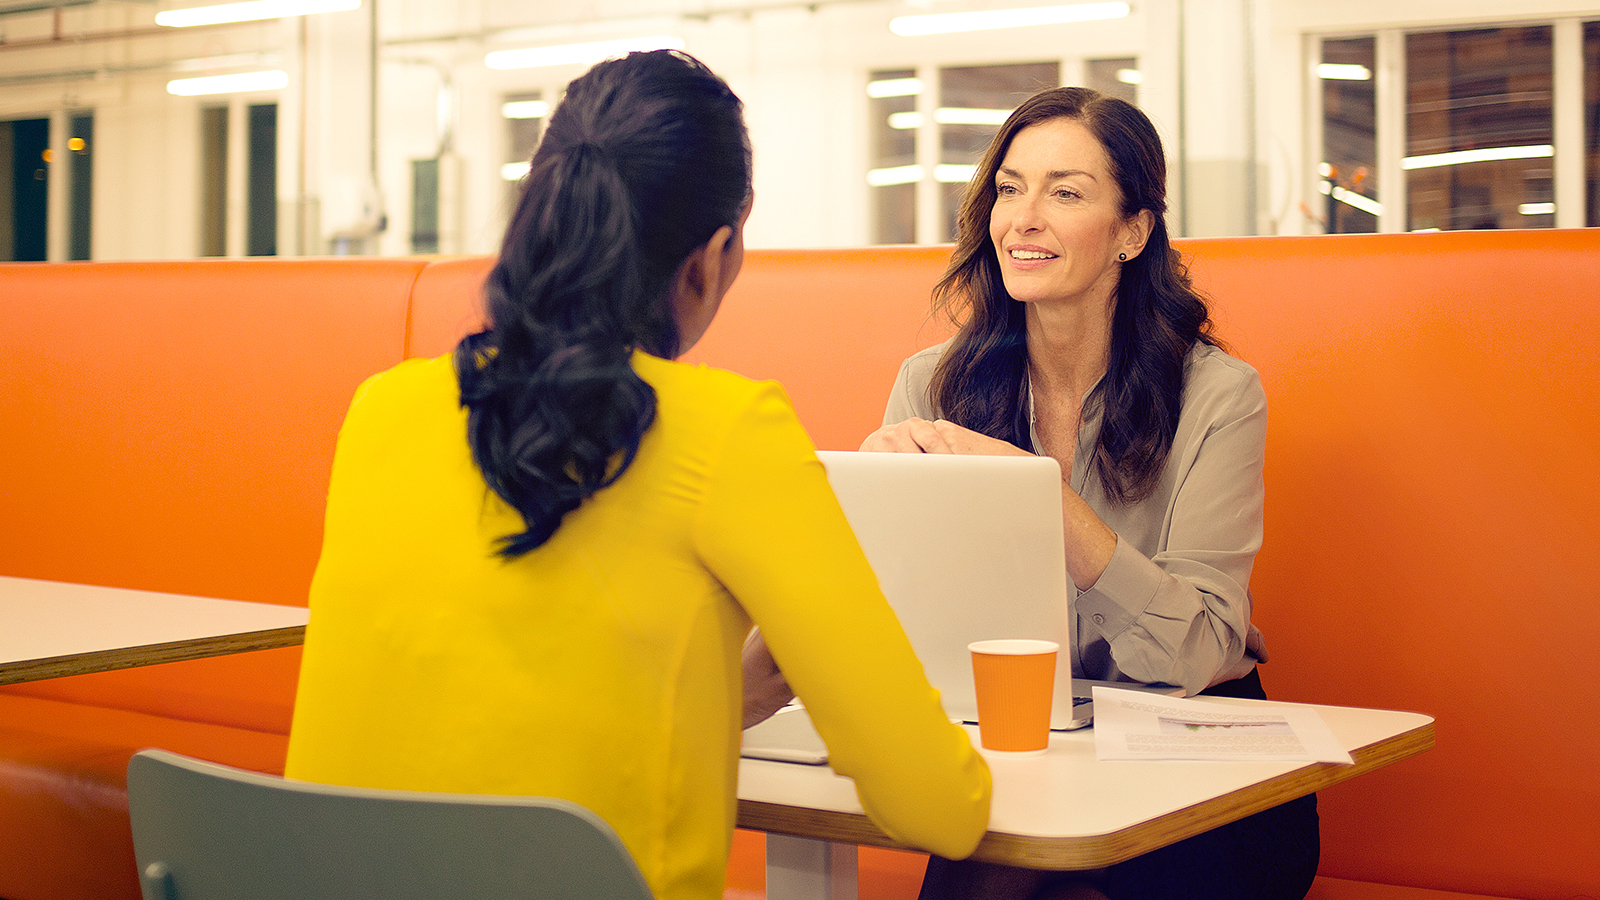 7 tips for better 1-on-1 meetings with your team